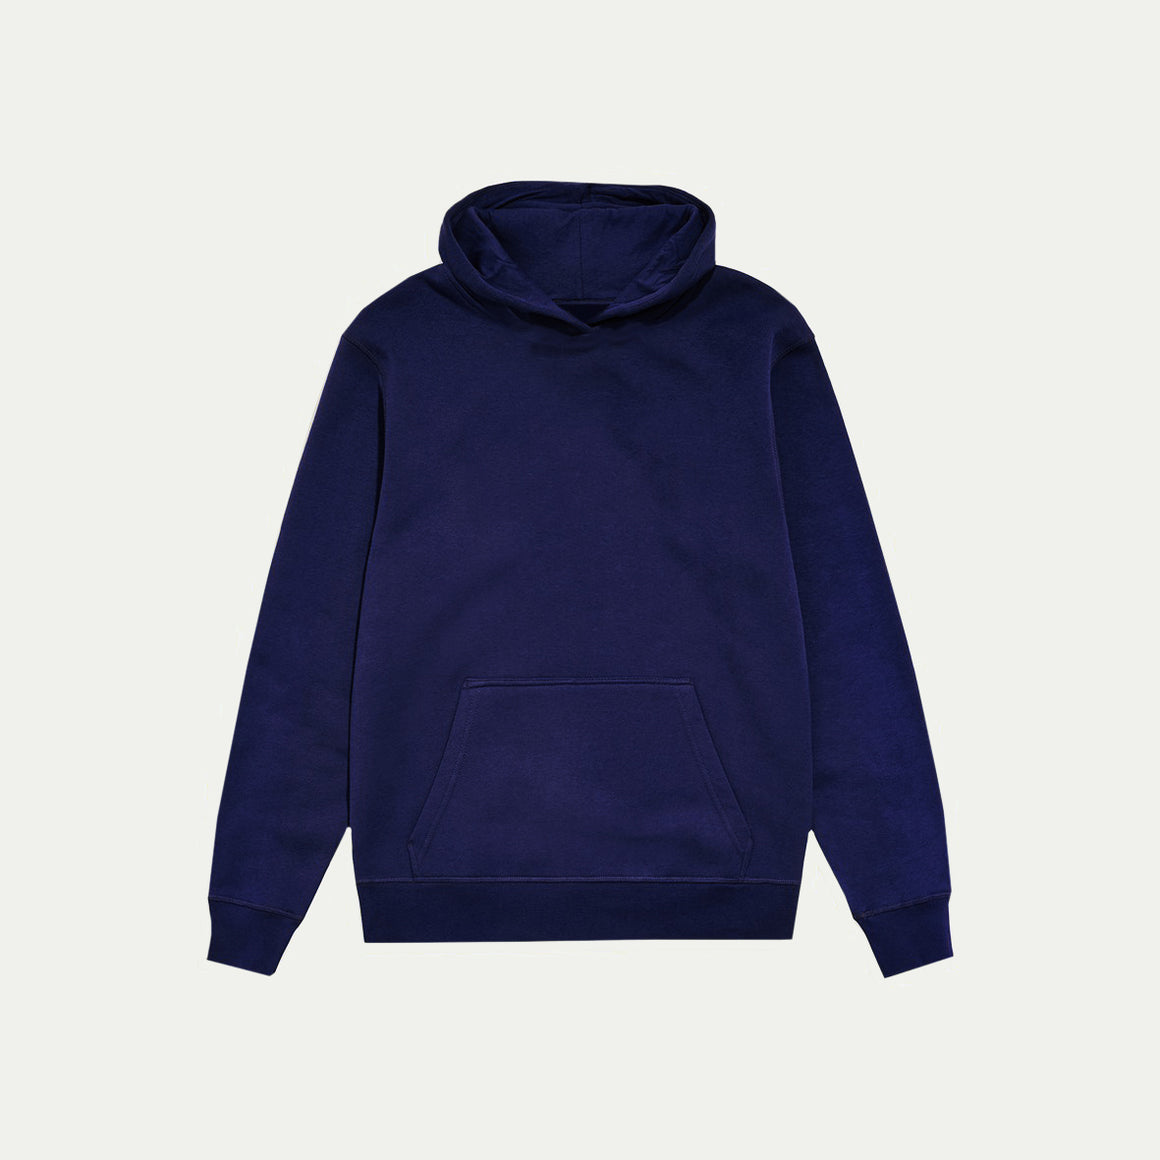 UNBRANDED ESSENTIAL PULLOVER HOODY | NAVY BLUE